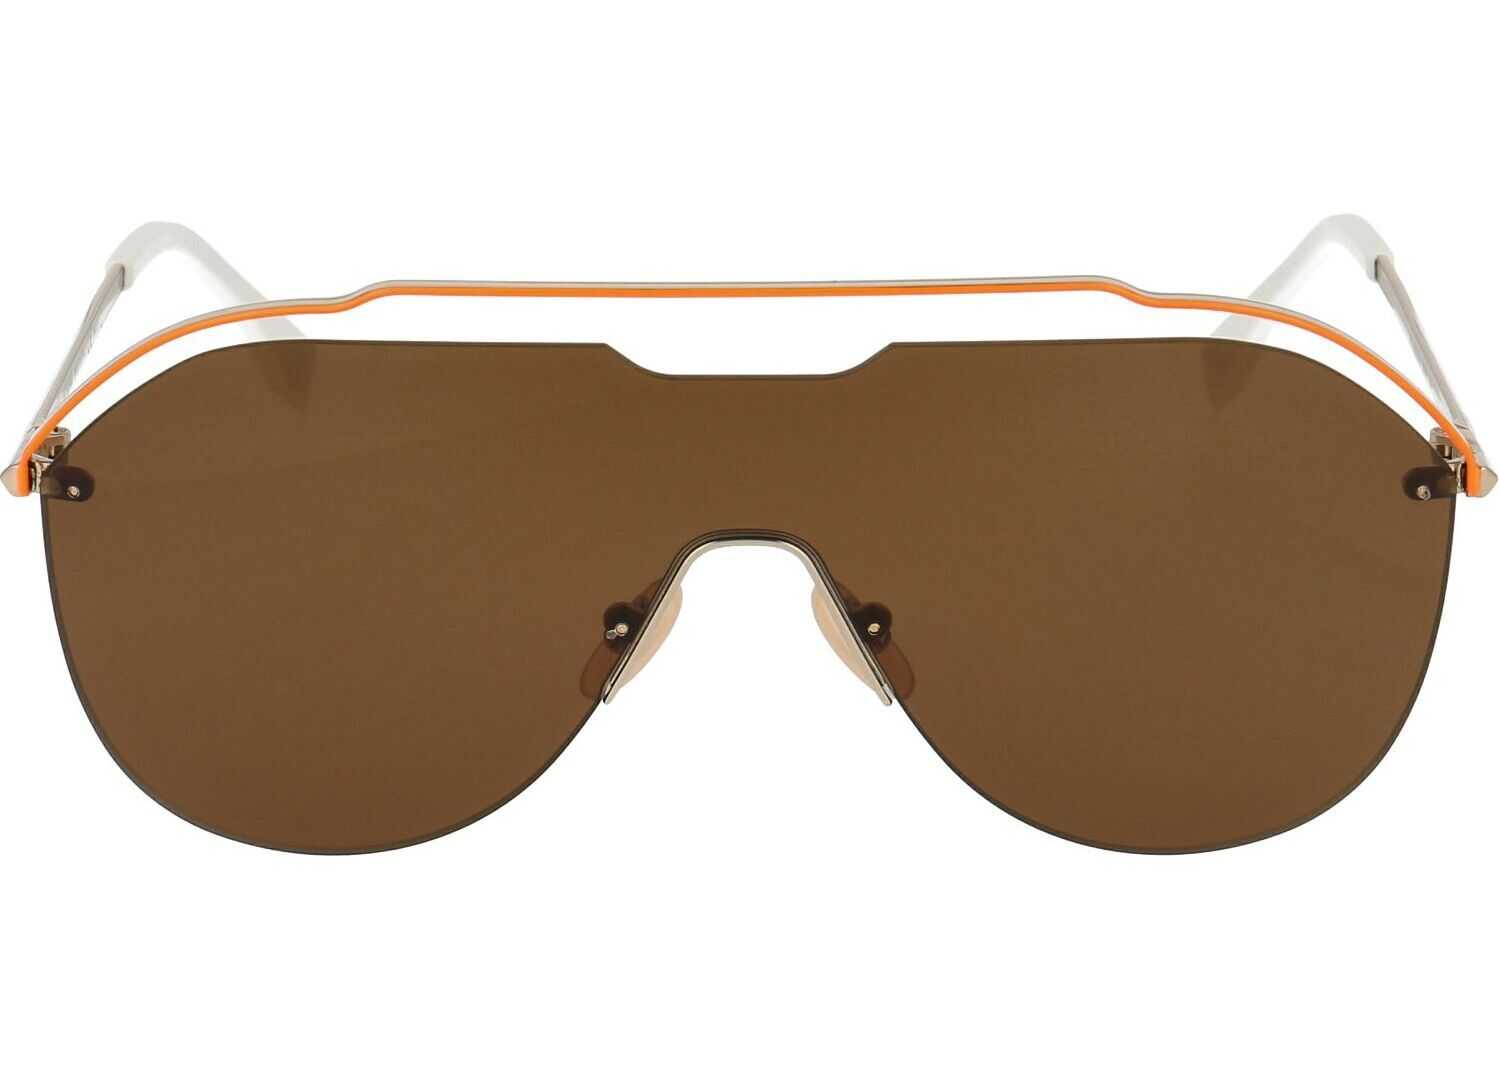 Fendi Metal Sunglasses thumbnail